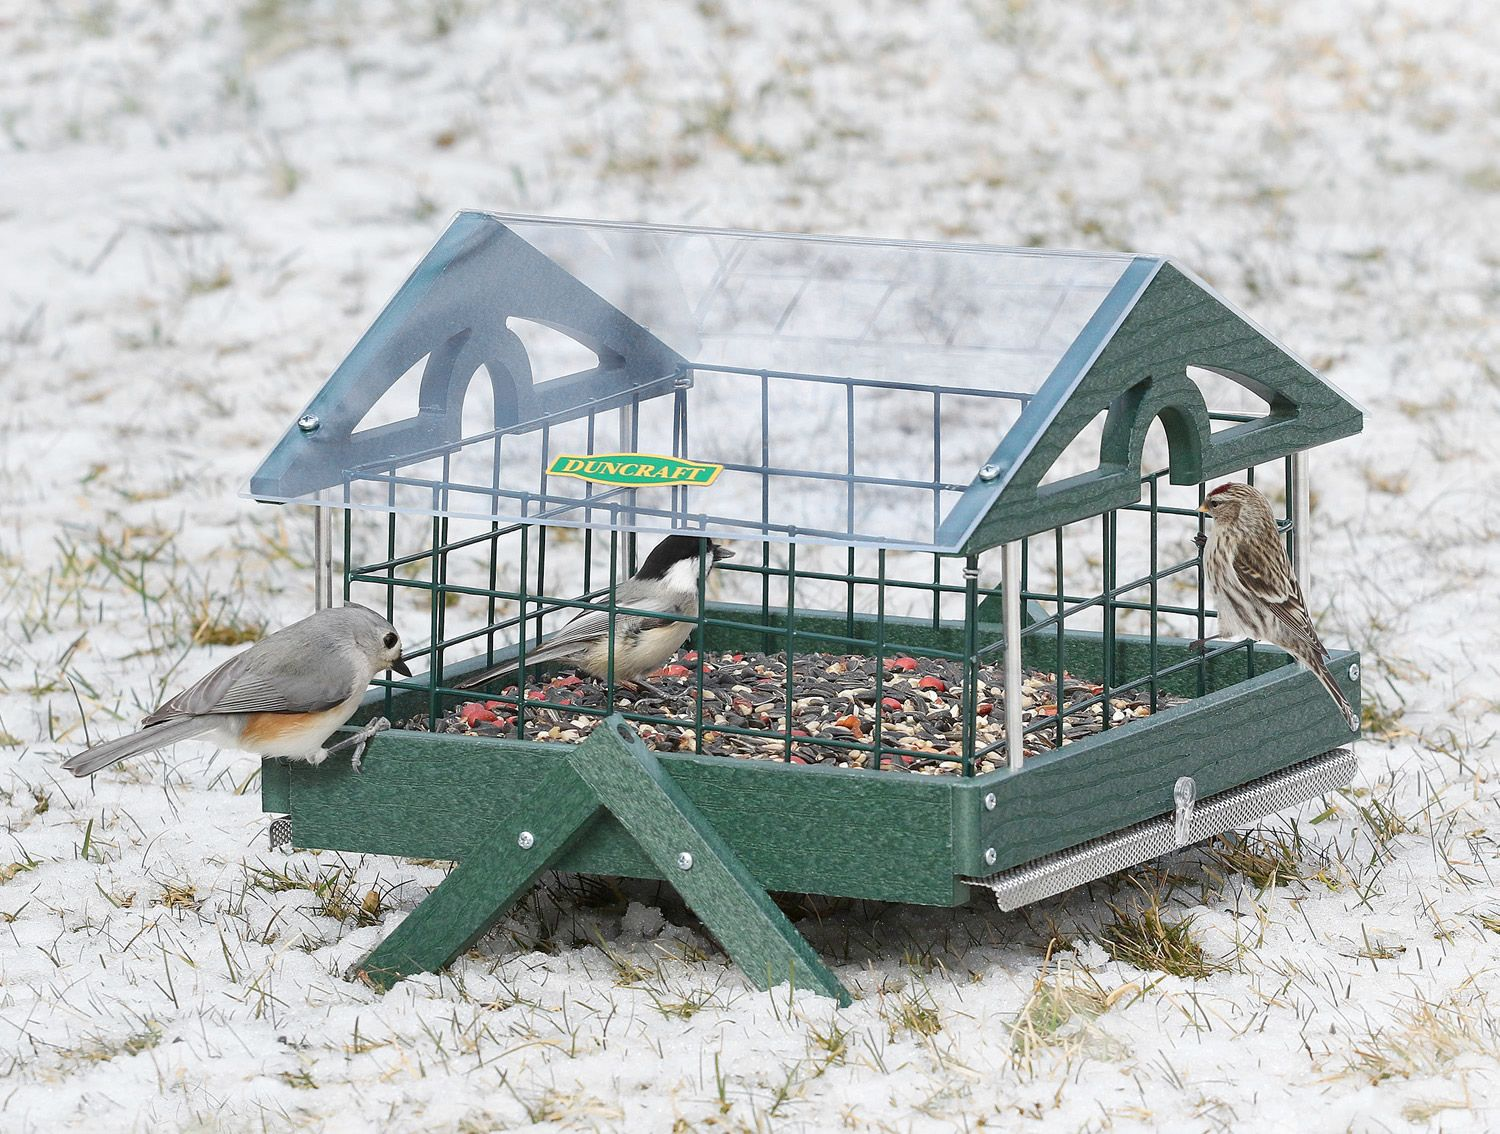 Pavilion Ground Haven Feeder:Our special haven wire caging allows songbirds to feed in peace! Chickadees, redpolls, titmice and others can easily enter through the safe 1-1/2 inch wire grid openings, while remaining out of reach from blackbirds, doves, pigeons and squirrels. Made in the USA